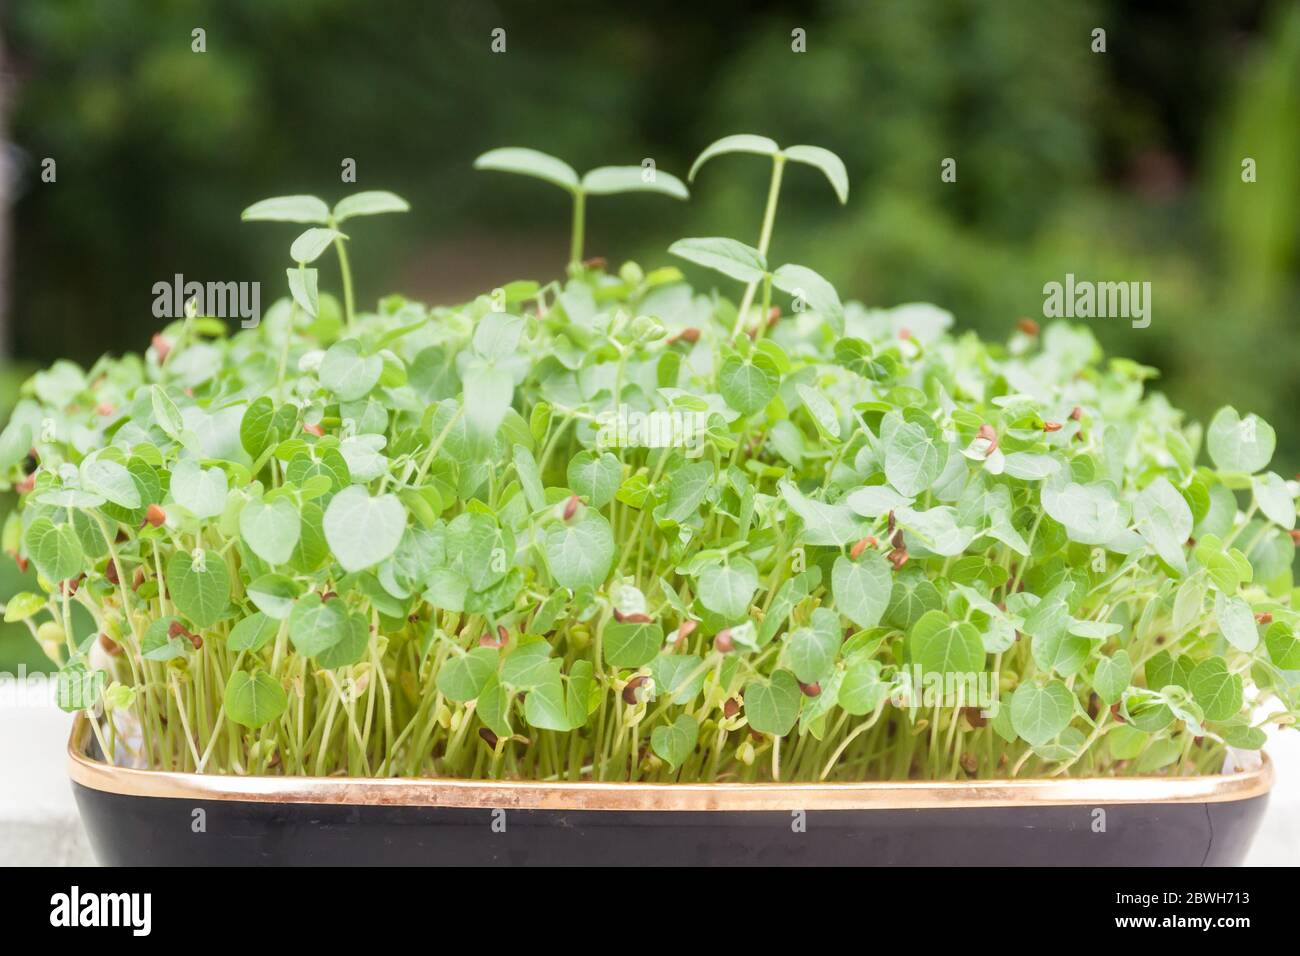 Micro greens concept background of sprouts growing Stock Photo